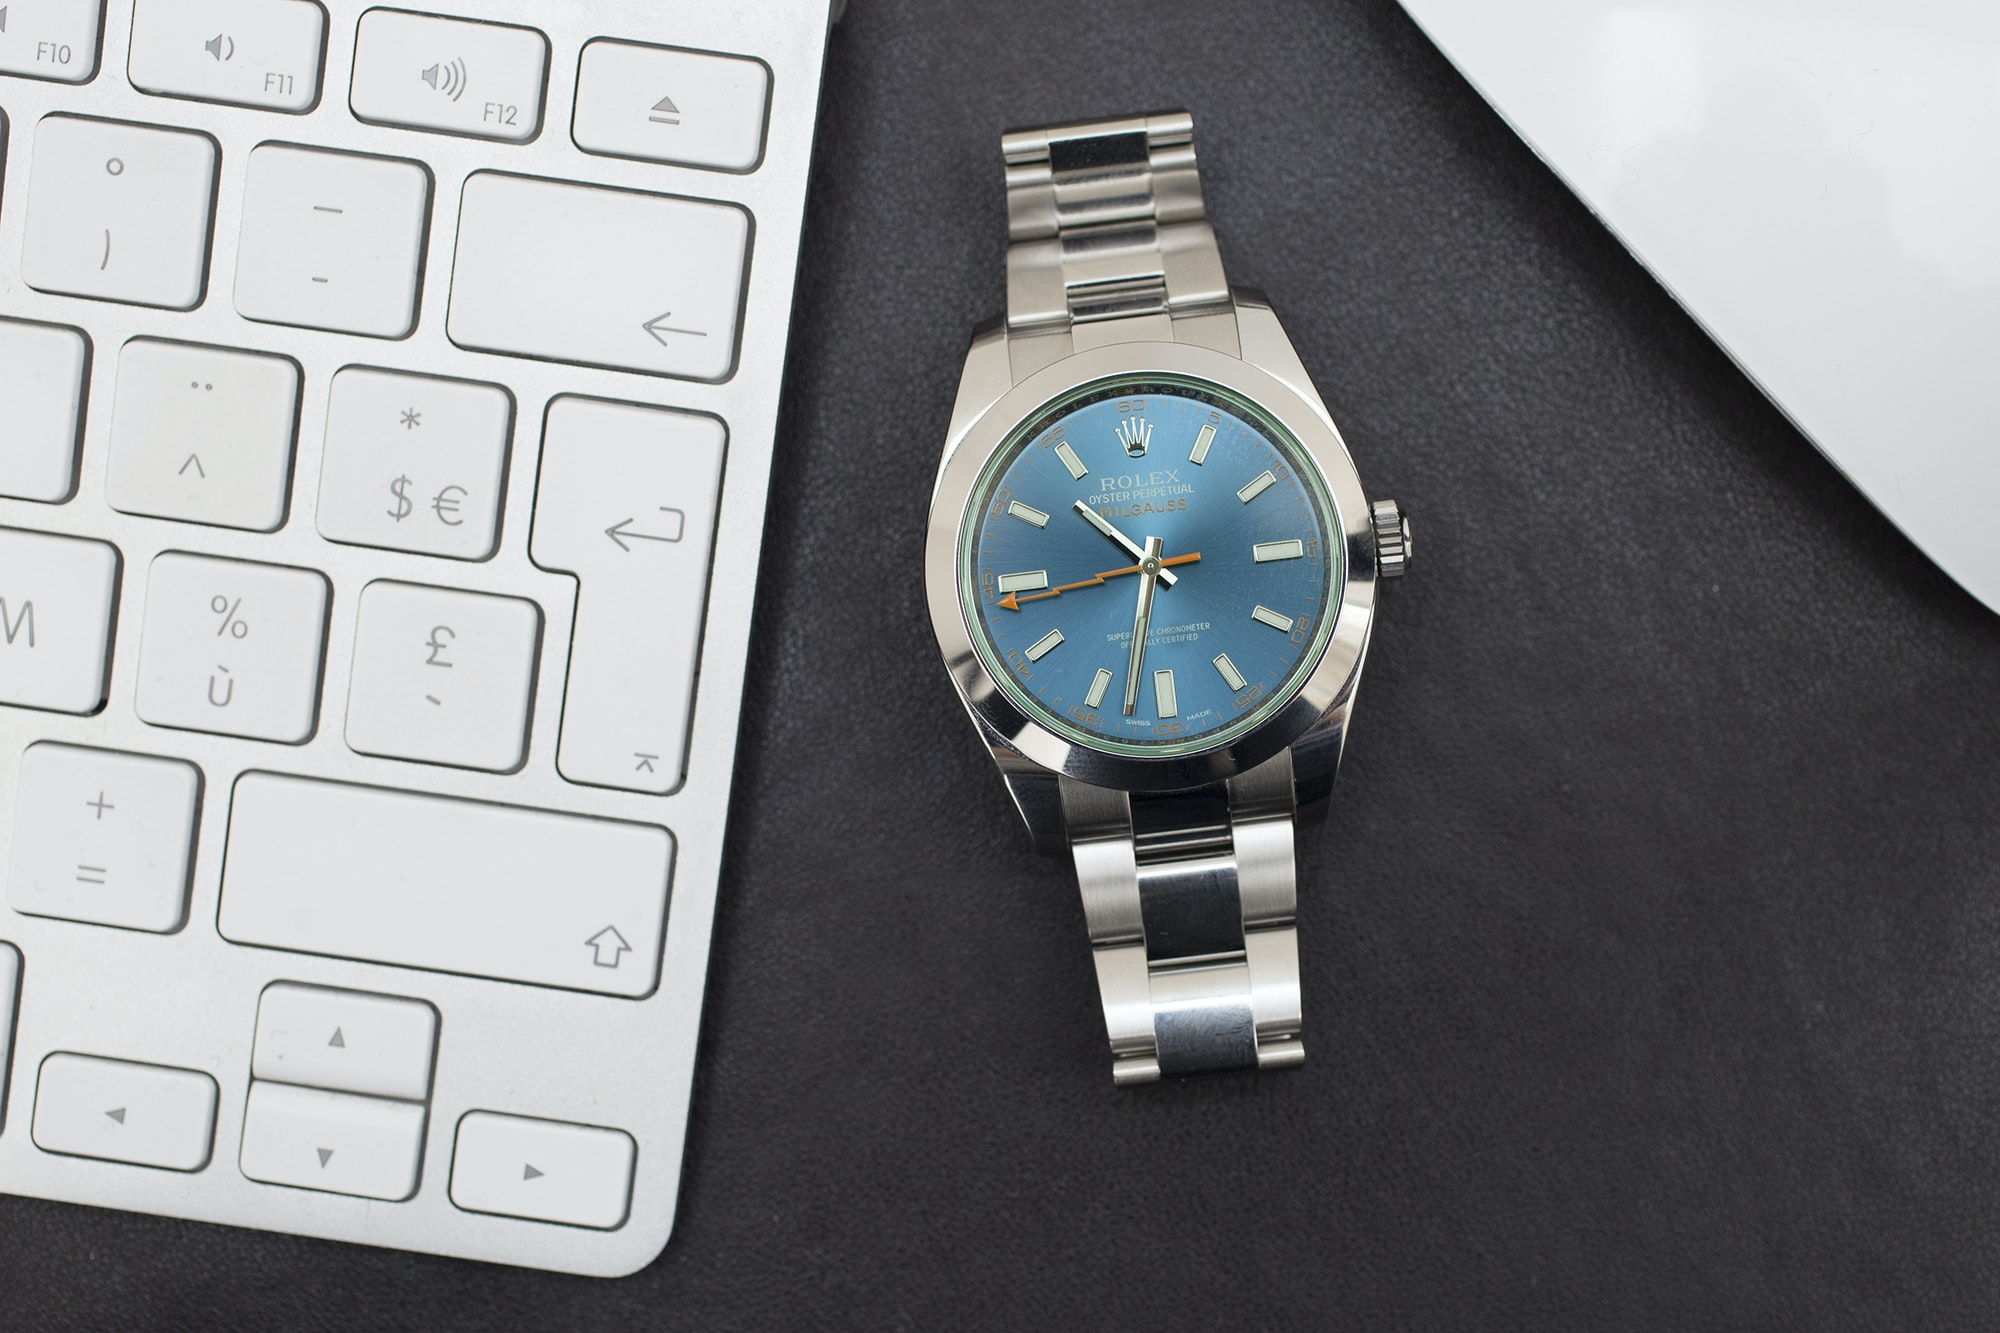 Img 6497.jpg?ixlib=rails 1.1 In-Depth: The Rolex Milgauss Z-Blue Edition In-Depth: The Rolex Milgauss Z-Blue Edition IMG 6497